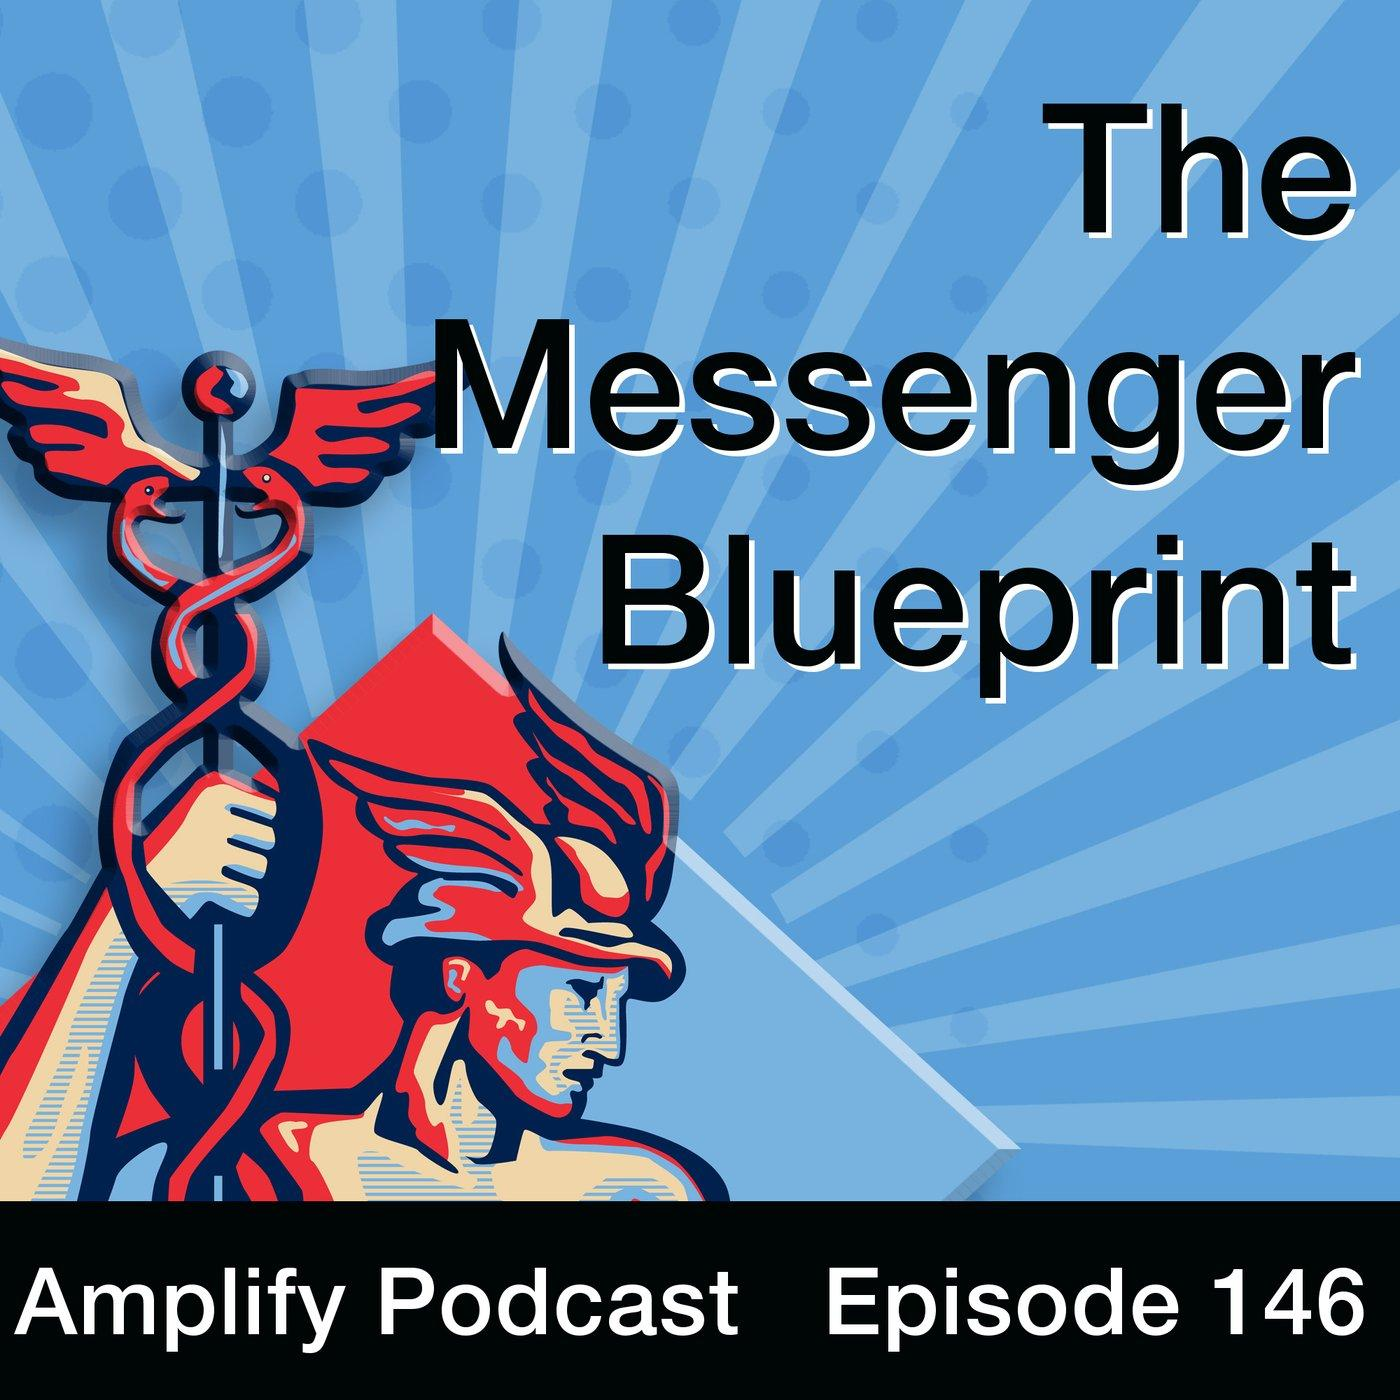 The Messenger Blueprint